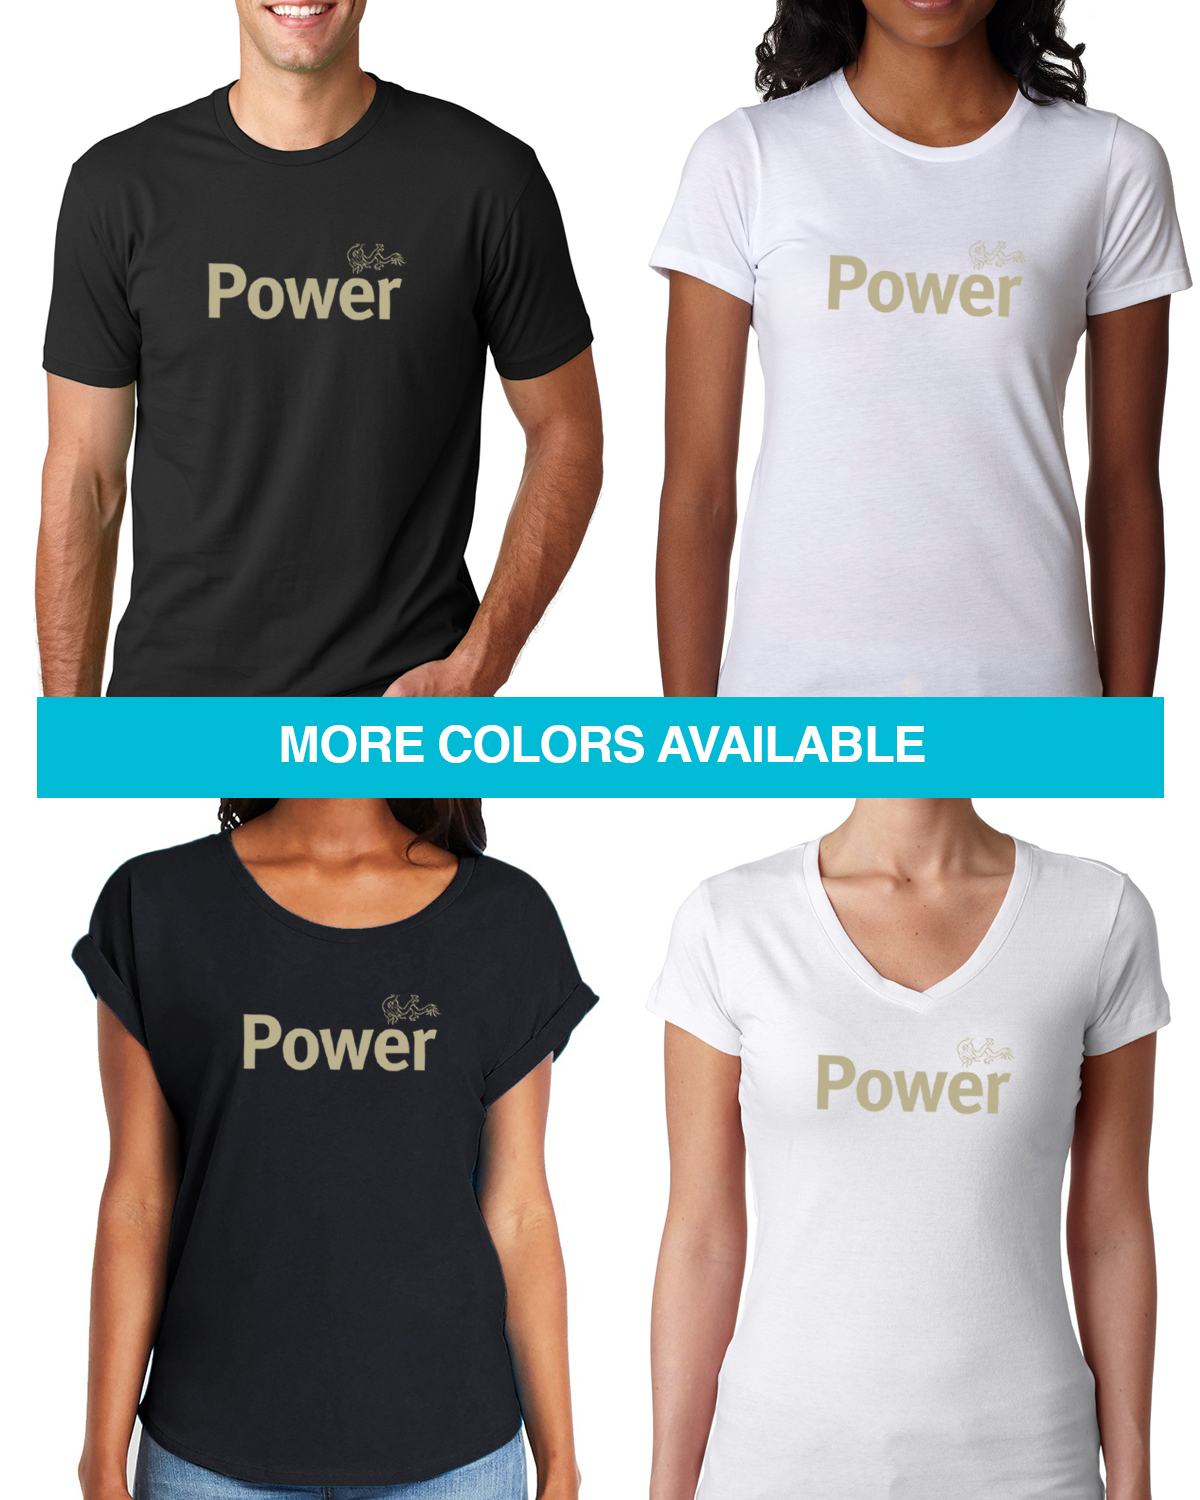 Short sleeve inspirational word'Power' t-shirt for men and women